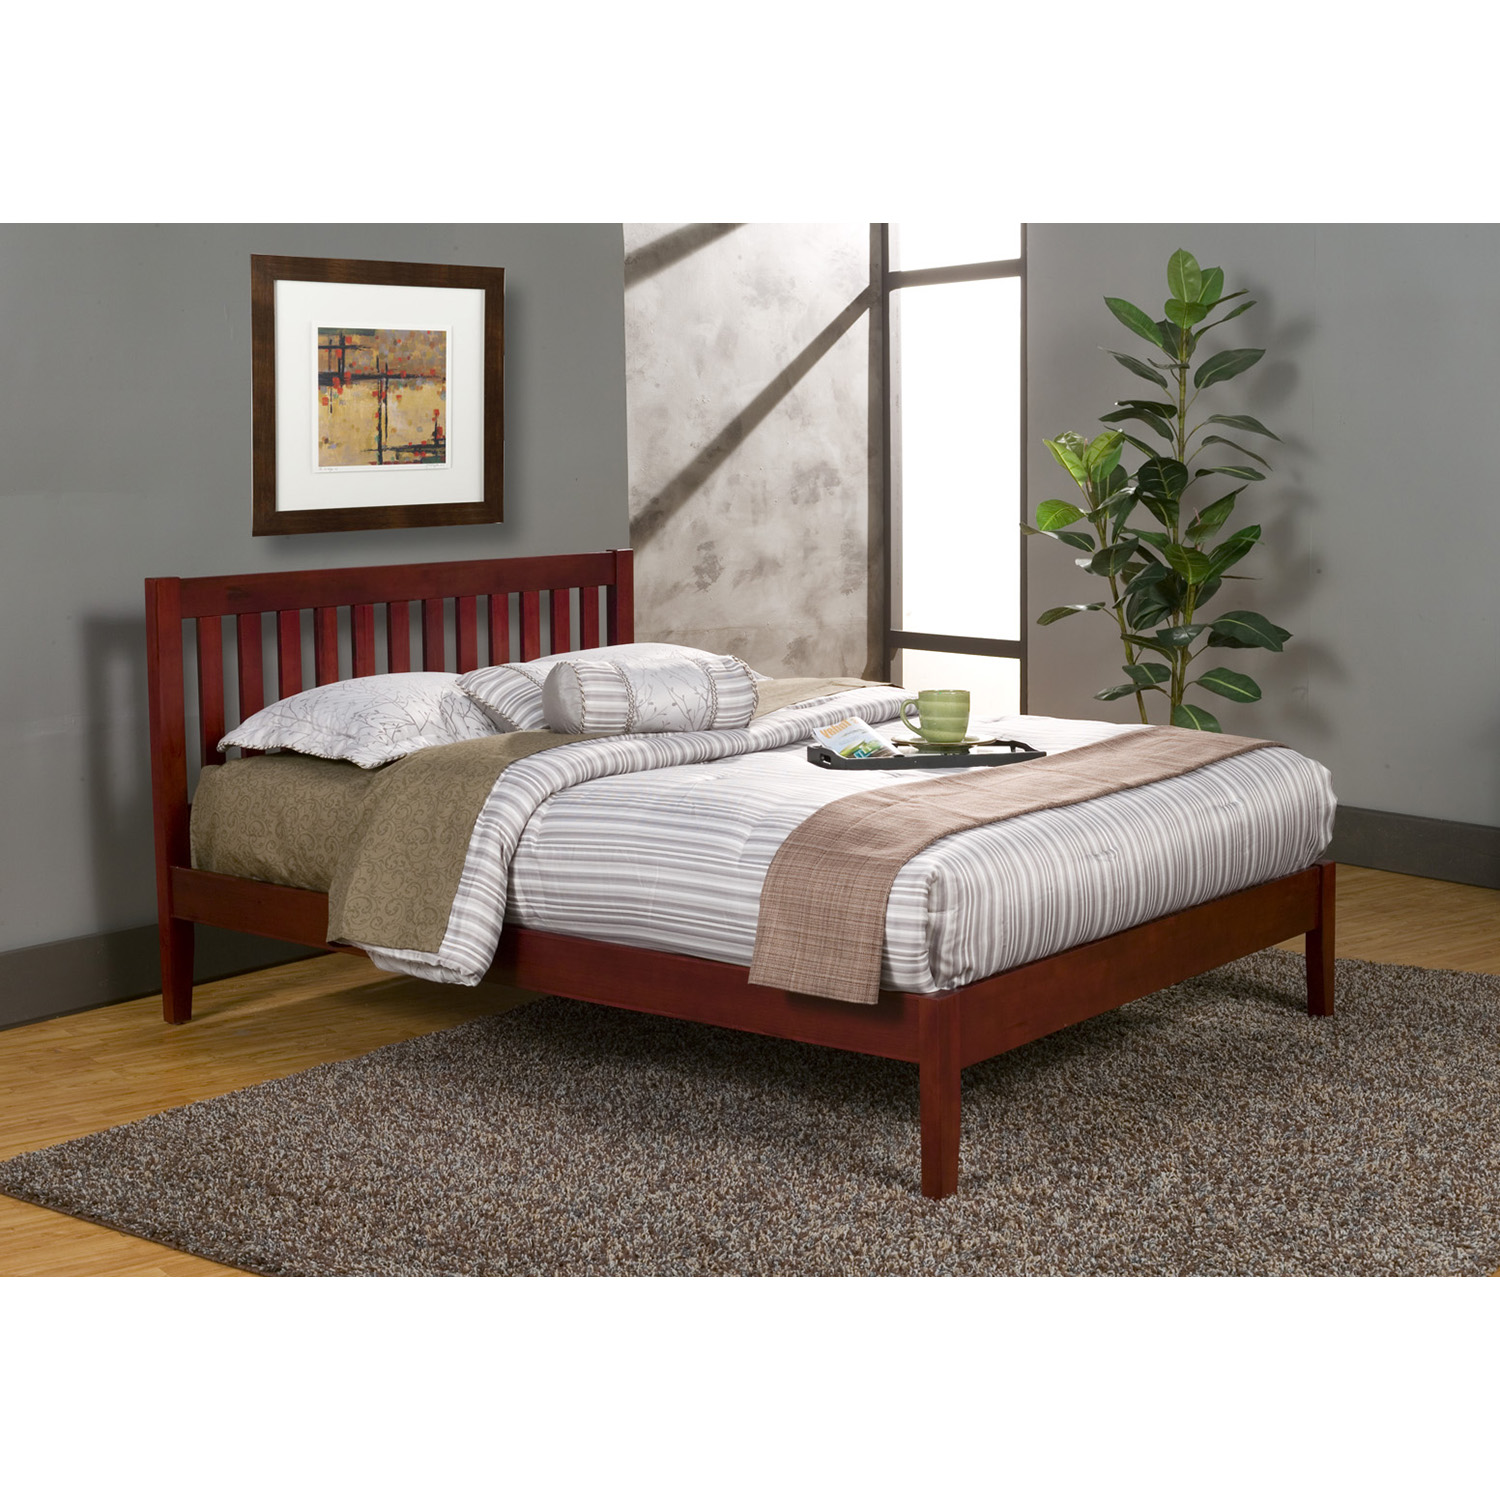 Portola Queen Platform Bed - Light Cherry - ALP-PB-01-QLC